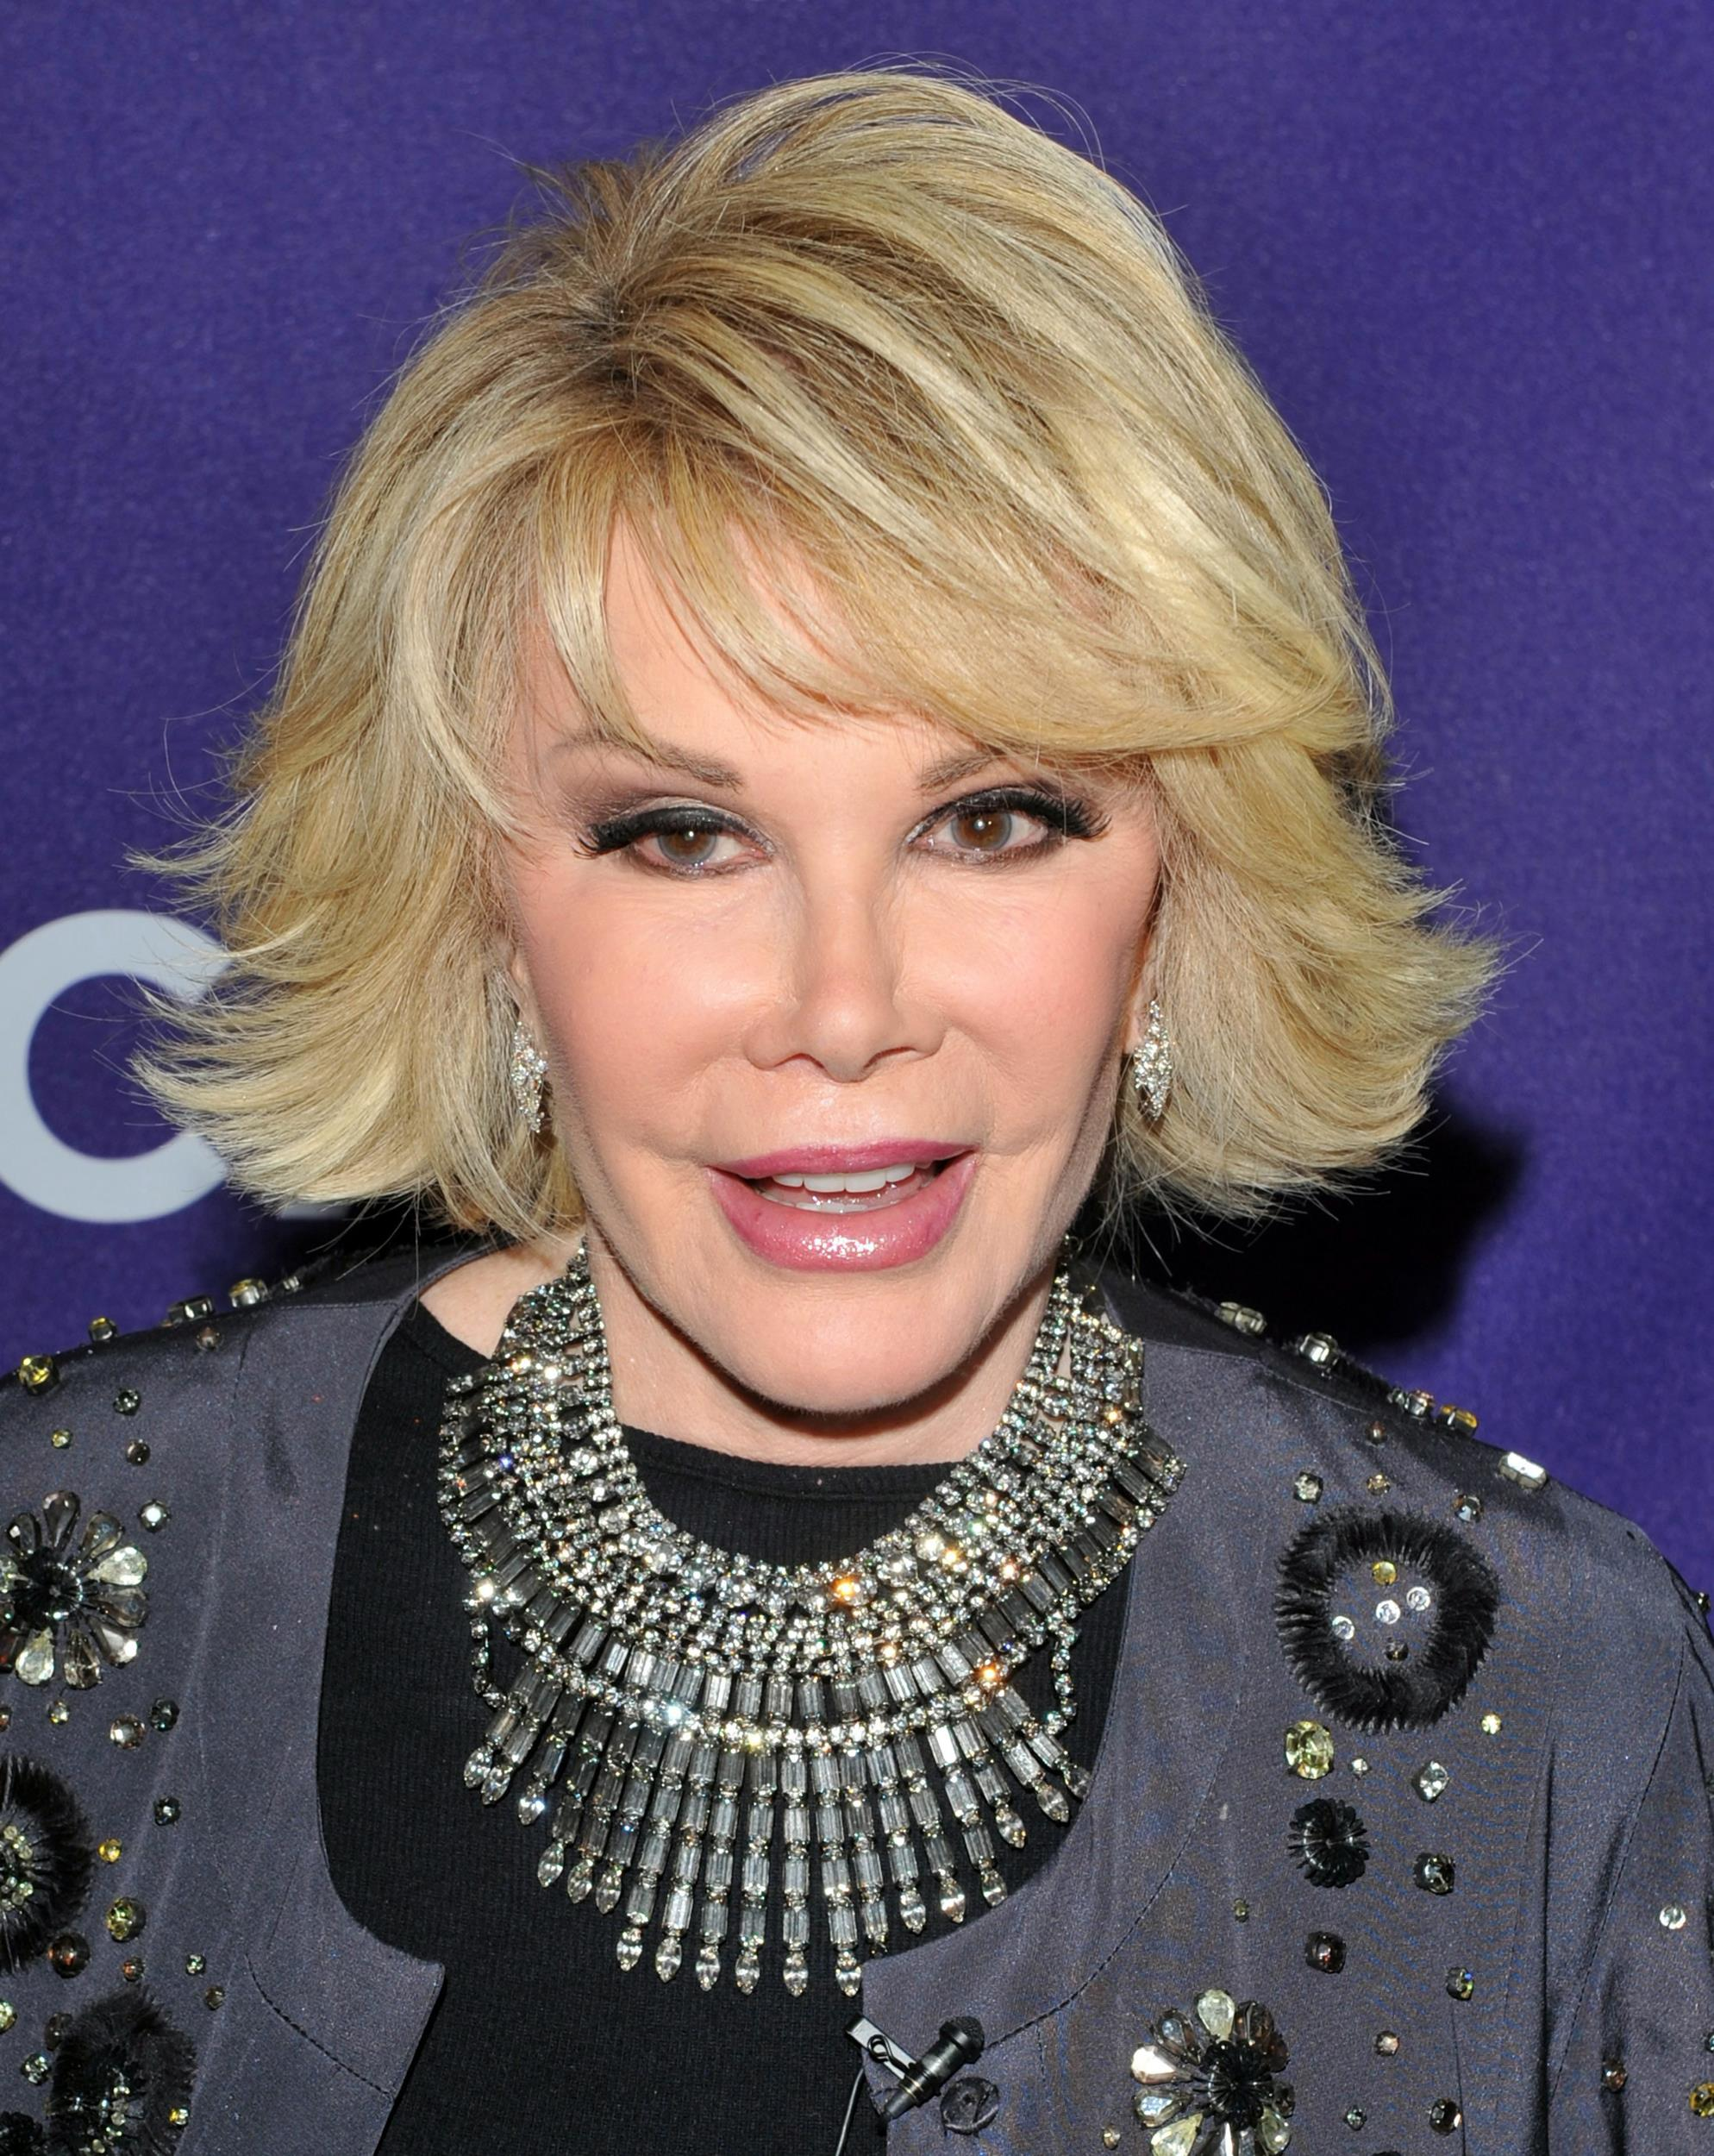 Image: Joan Rivers in 2010